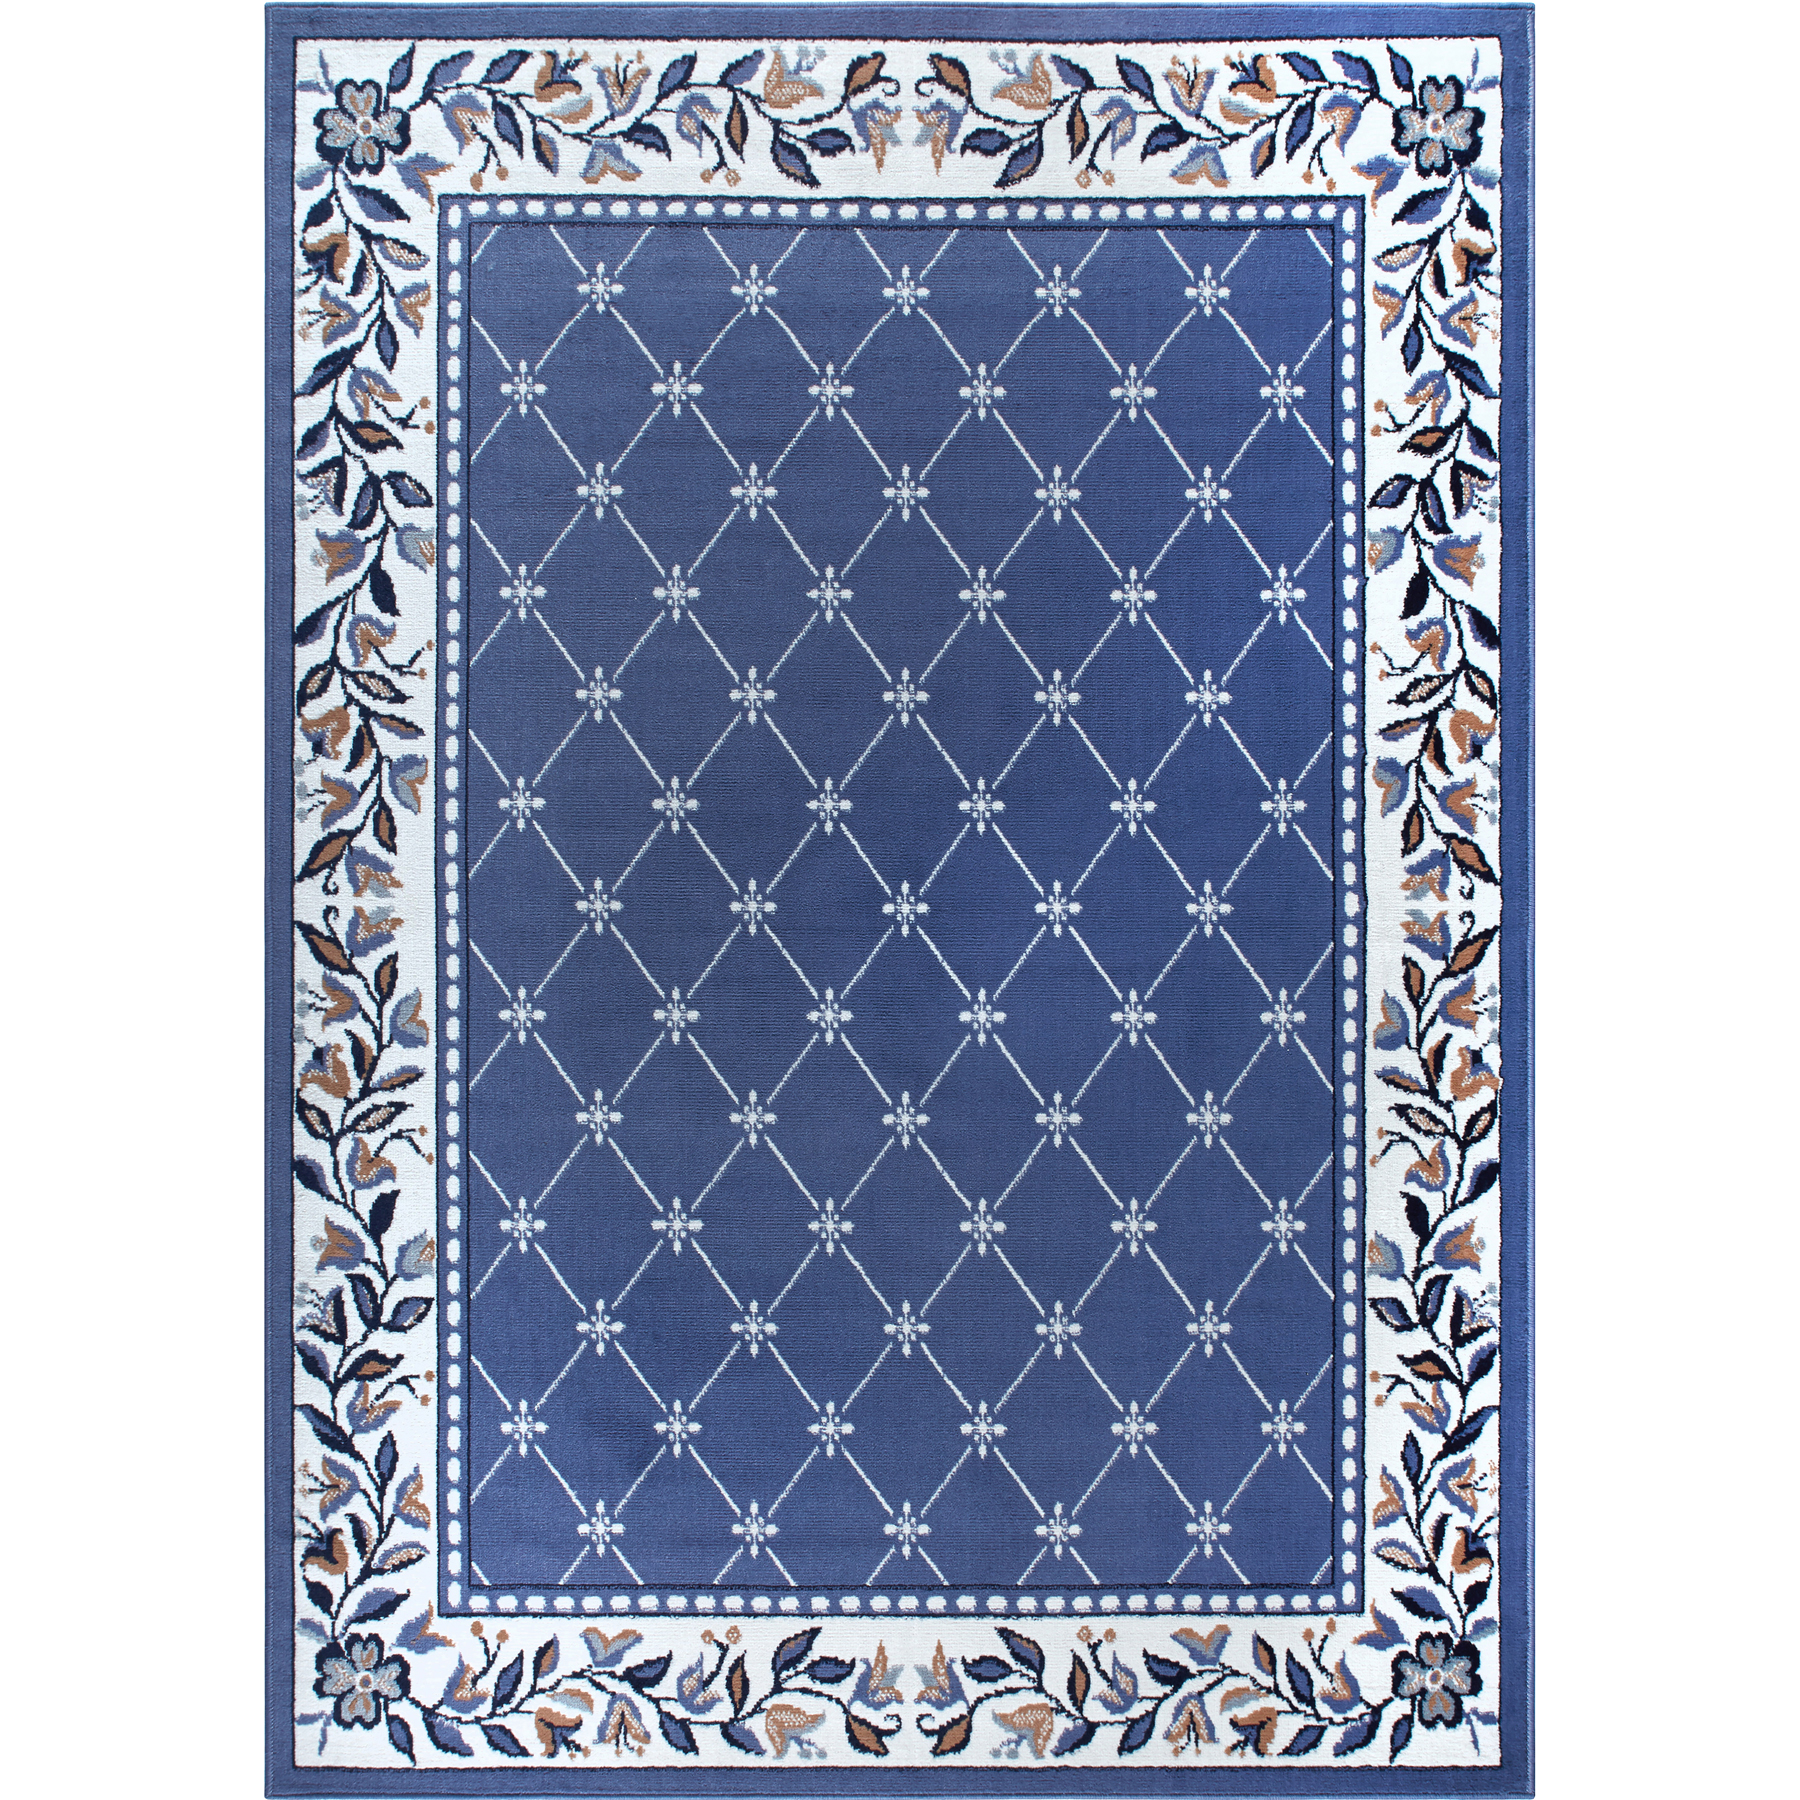 Trellis moroccan tile area rug or floral lattice modern for Area rug sizes